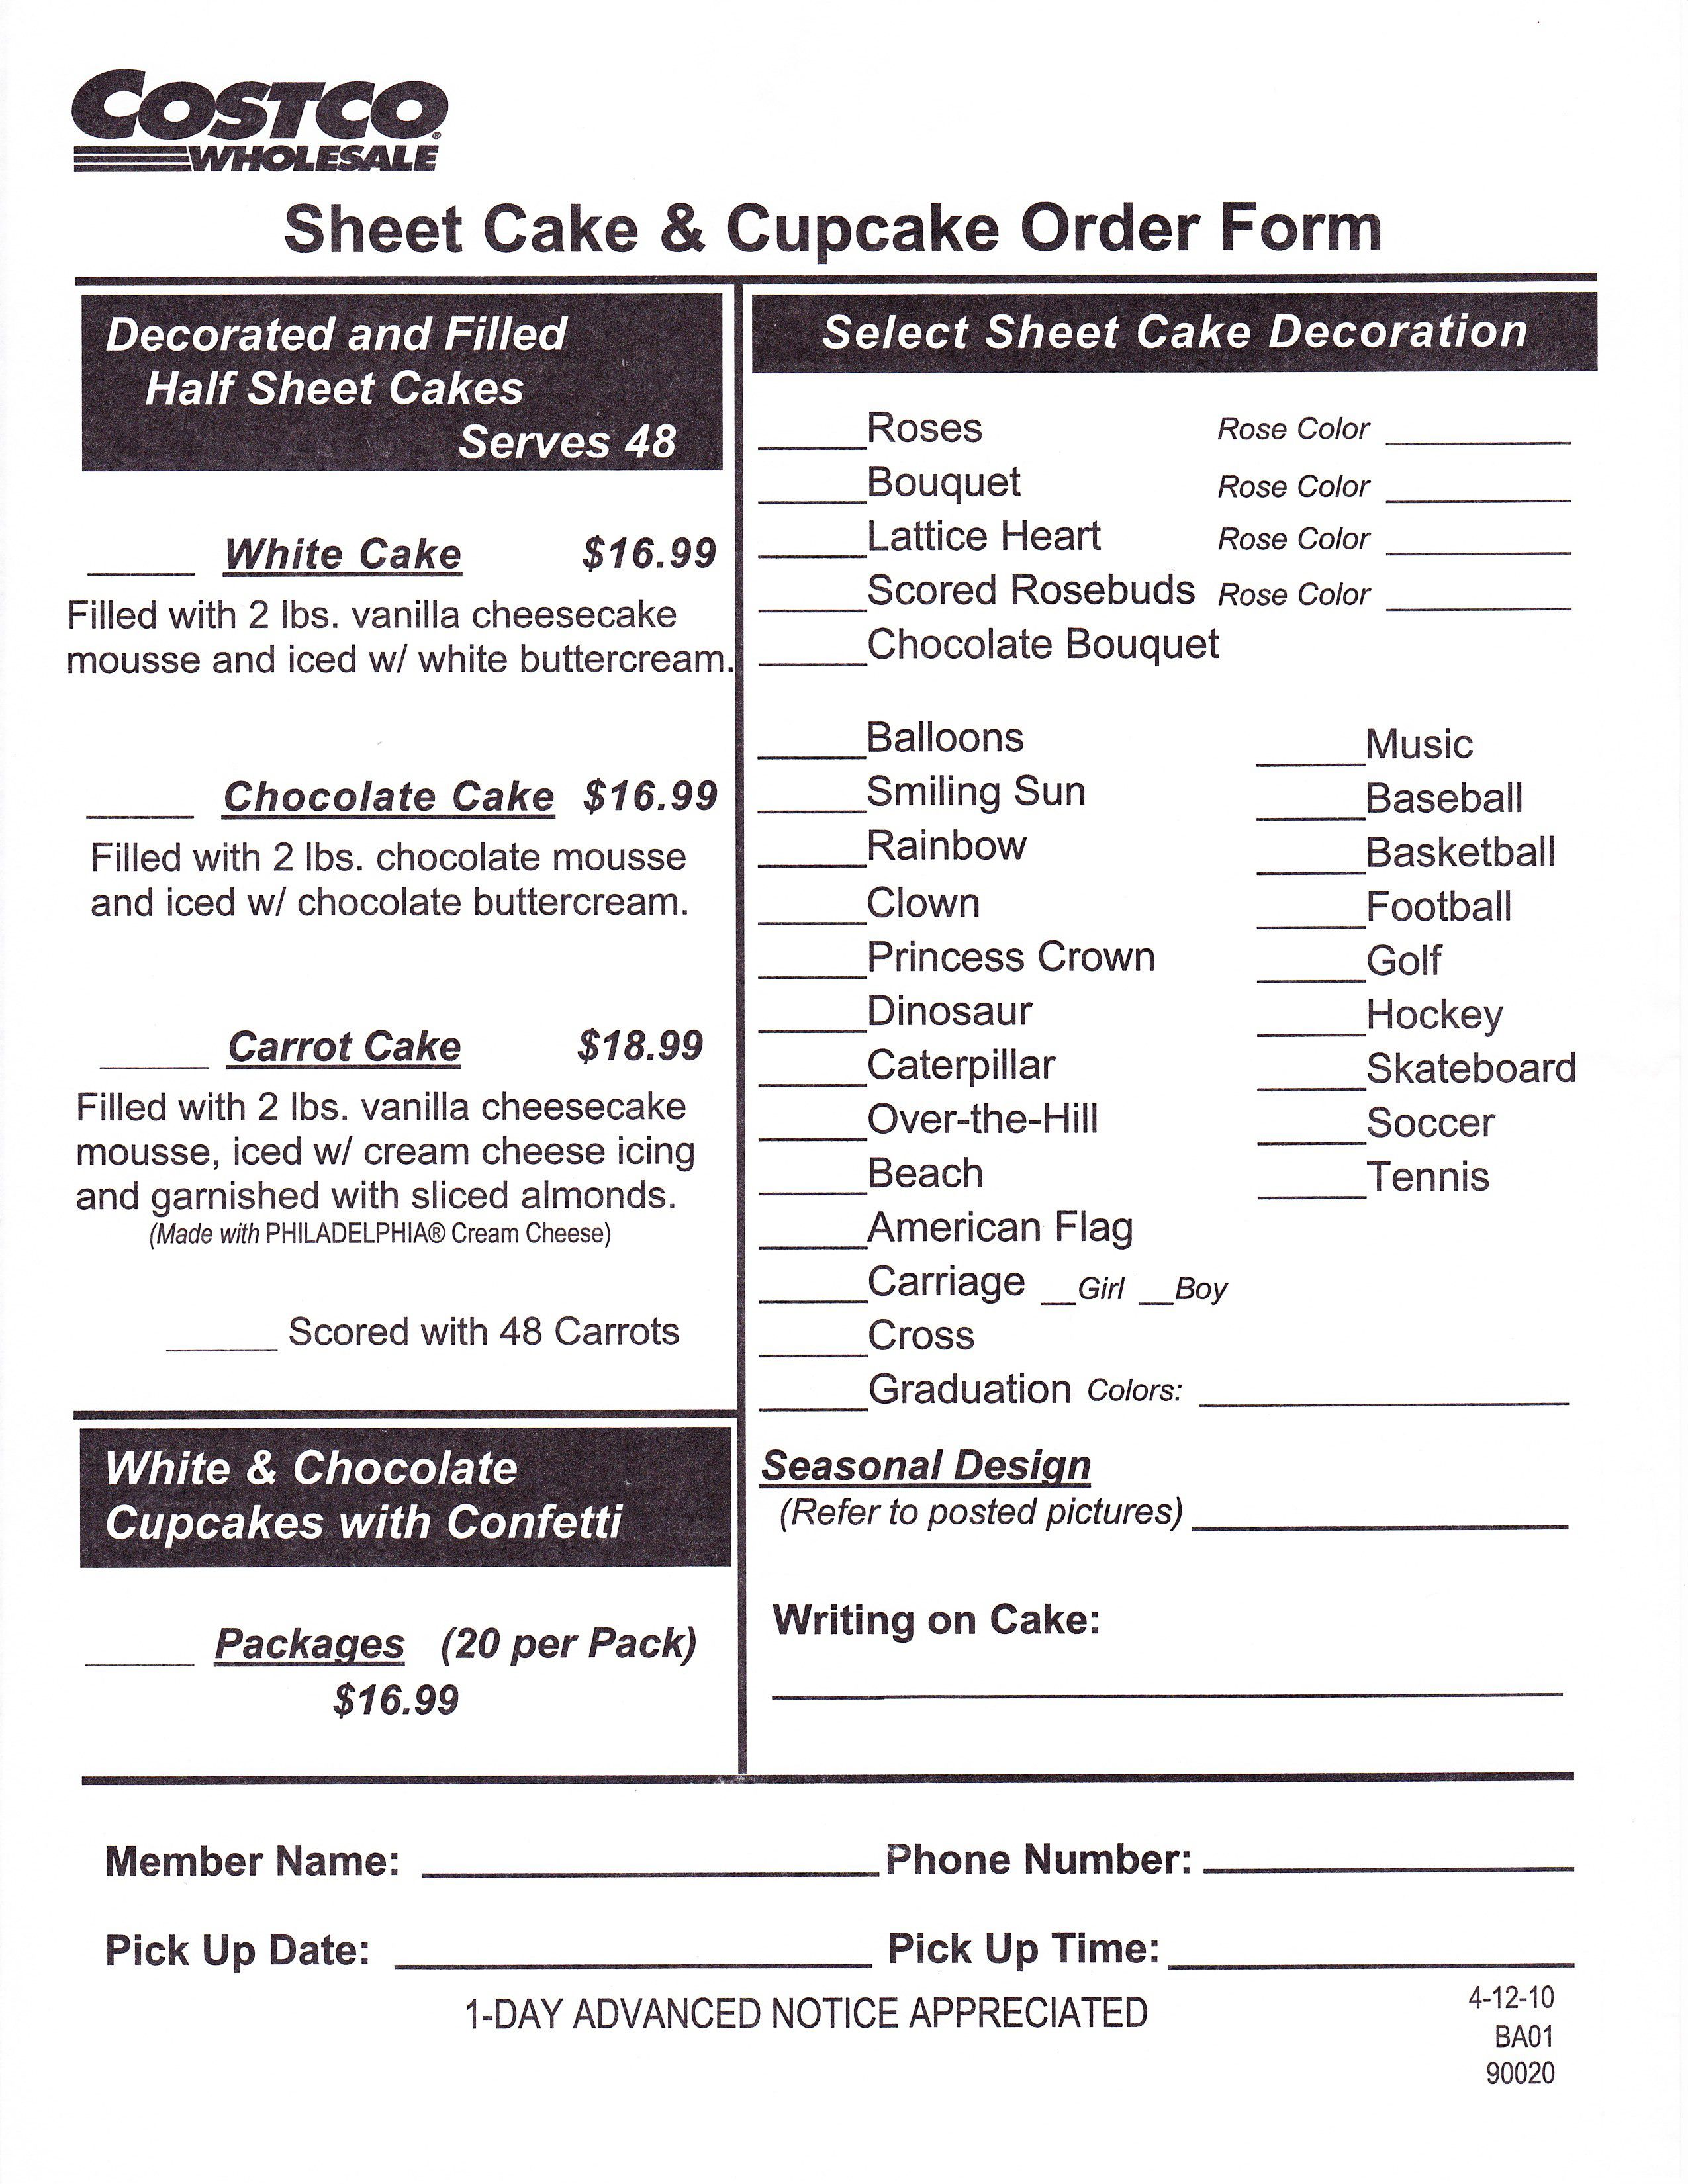 17 Best images about Cake Order Forms on Pinterest | Cake central ...